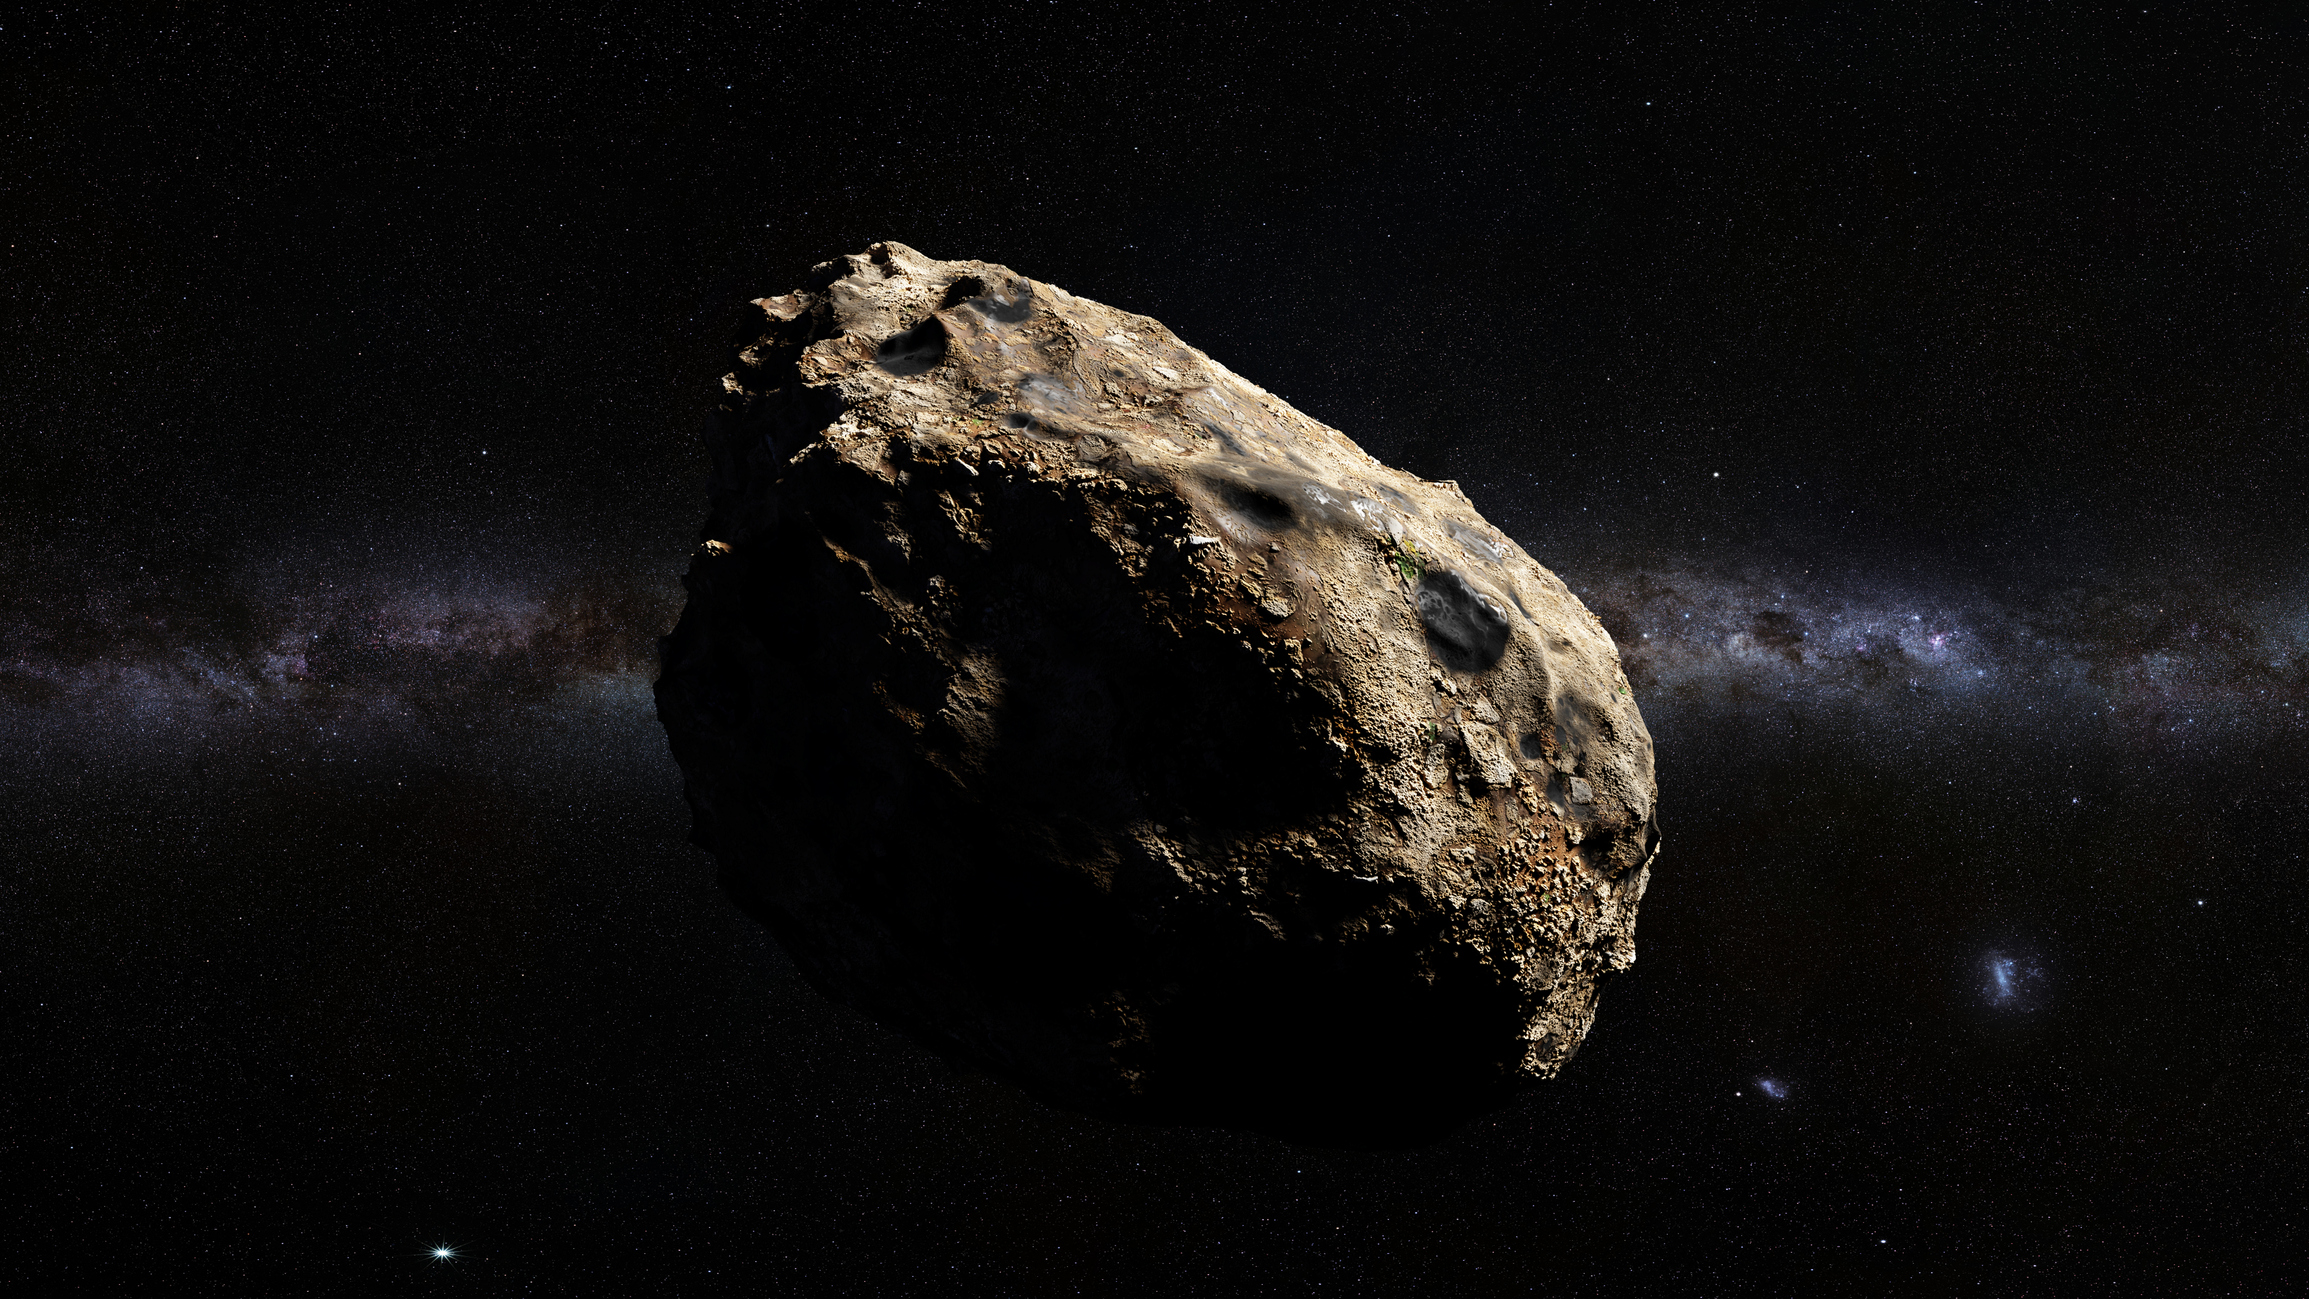 2006 QQ23: Enormous Asteroid Larger Than Empire State